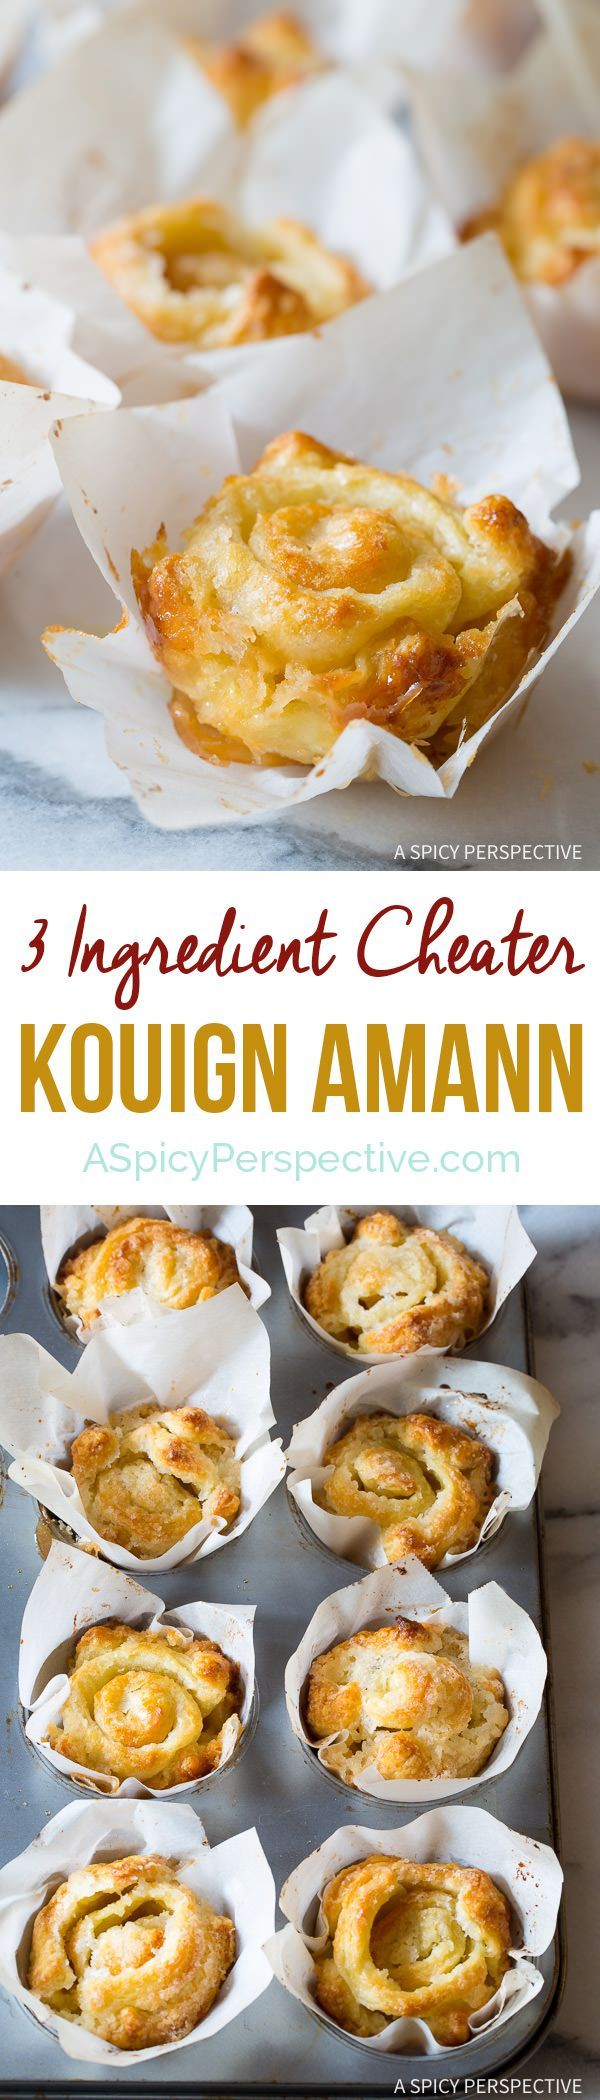 "Fabulous 3-Ingredient ""Cheater"" Kouign Amann Recipe on ASpicyPerspective.com"